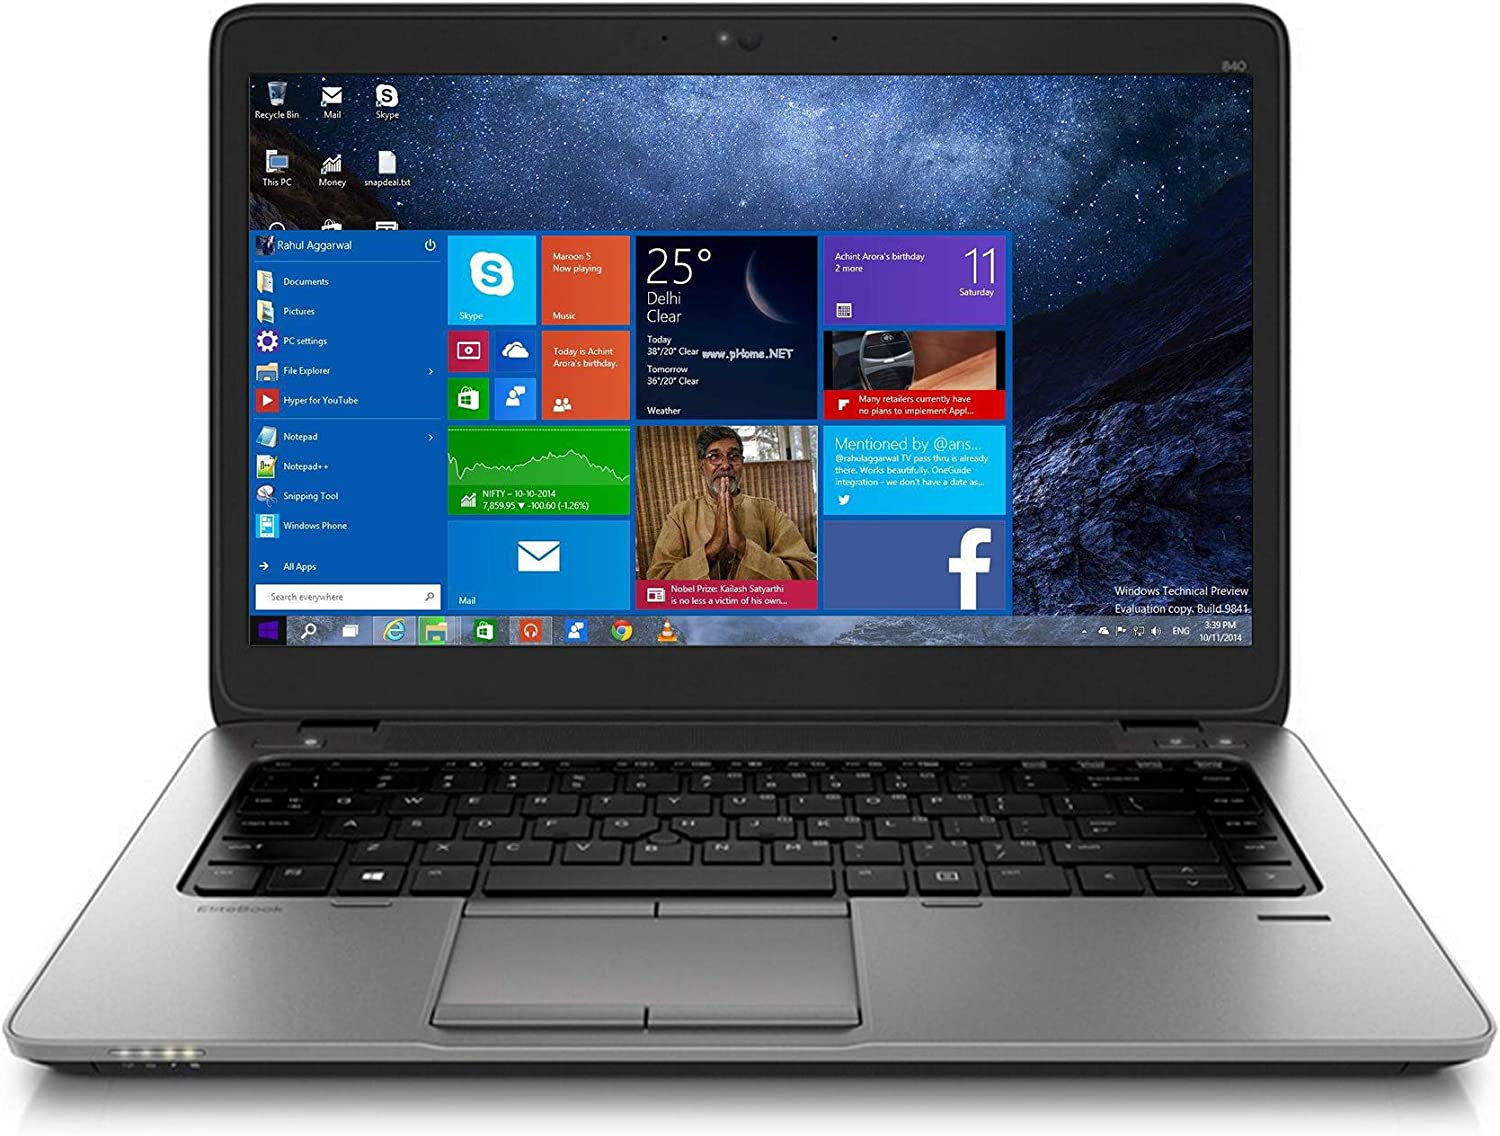 Used Like New Laptops 840 G2 14inch core i3 5010 8GB RAM 500GB HDD - Business Laptop with Windows